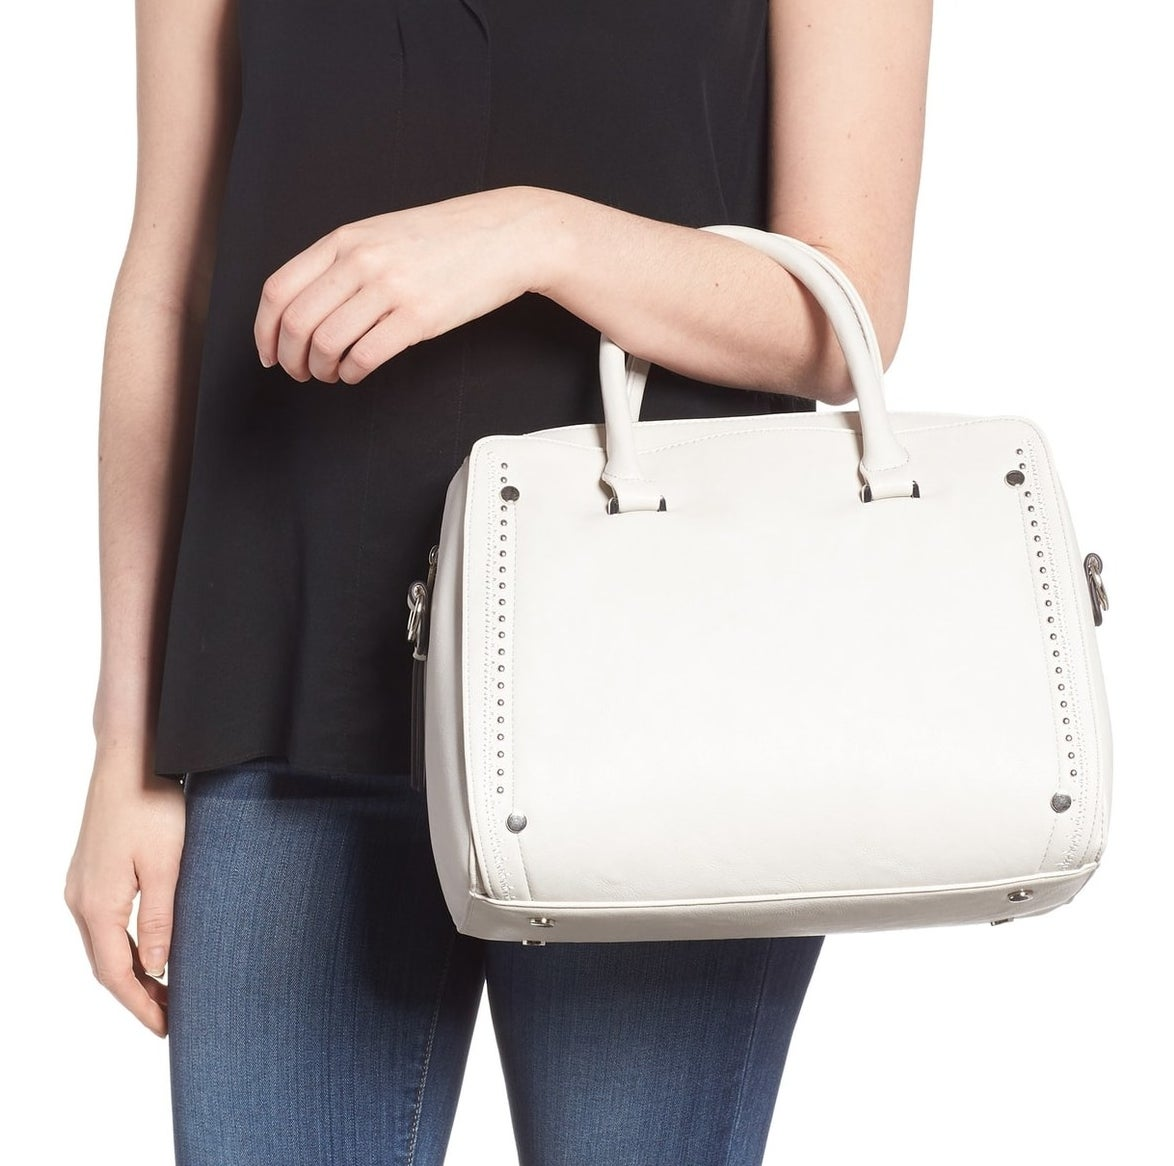 Price: $47.96 (originally $79.95, available in two colors)